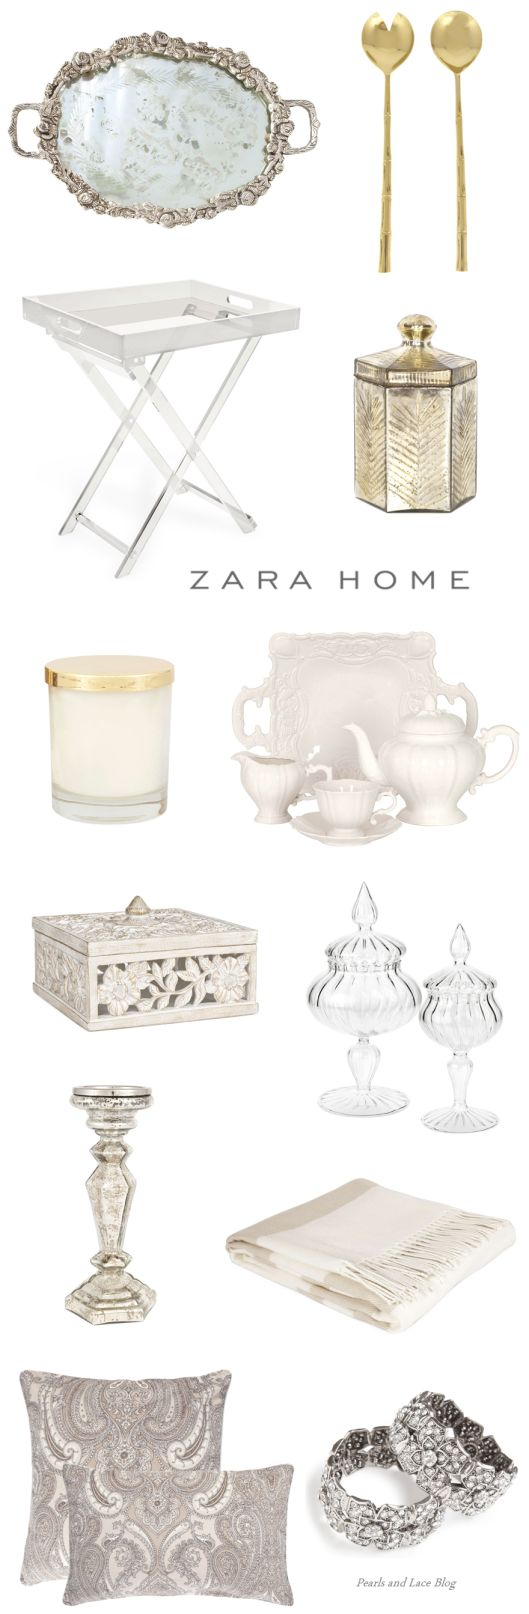 zara home by pearls and lace absolutely loving zara home products pinterest zara. Black Bedroom Furniture Sets. Home Design Ideas